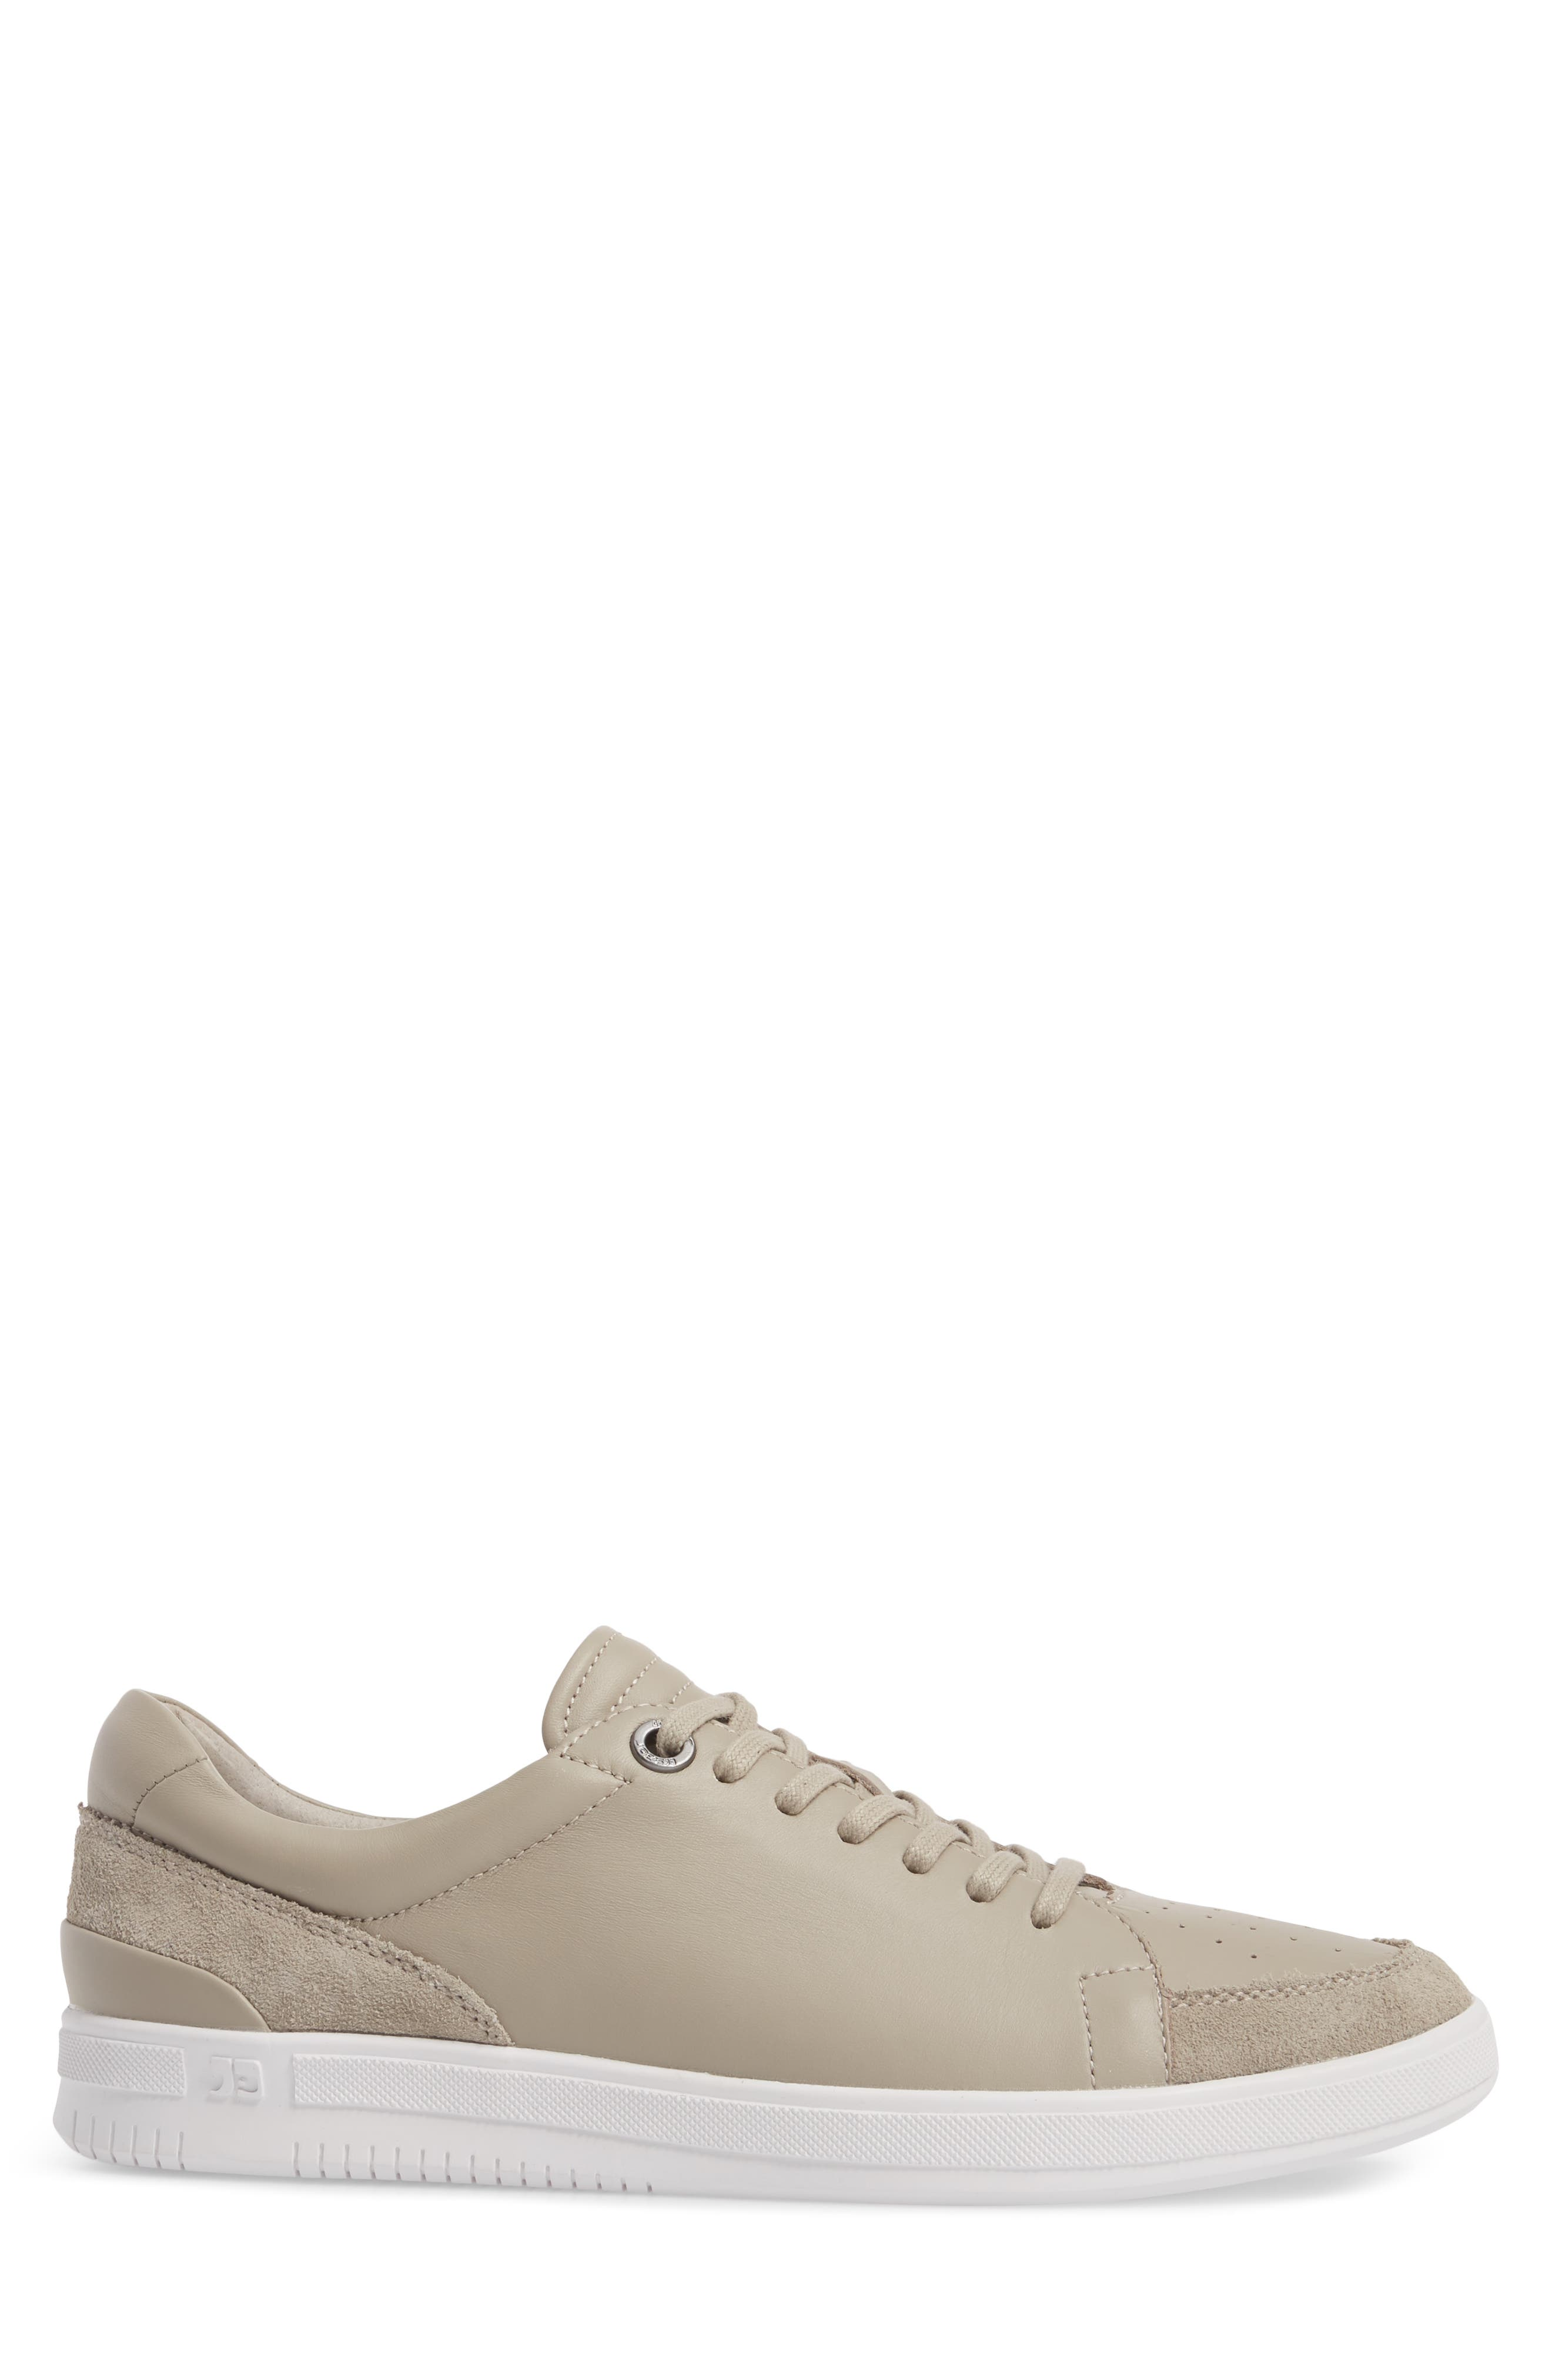 Joe Classic Low Top Sneaker,                             Alternate thumbnail 3, color,                             STONE LEATHER